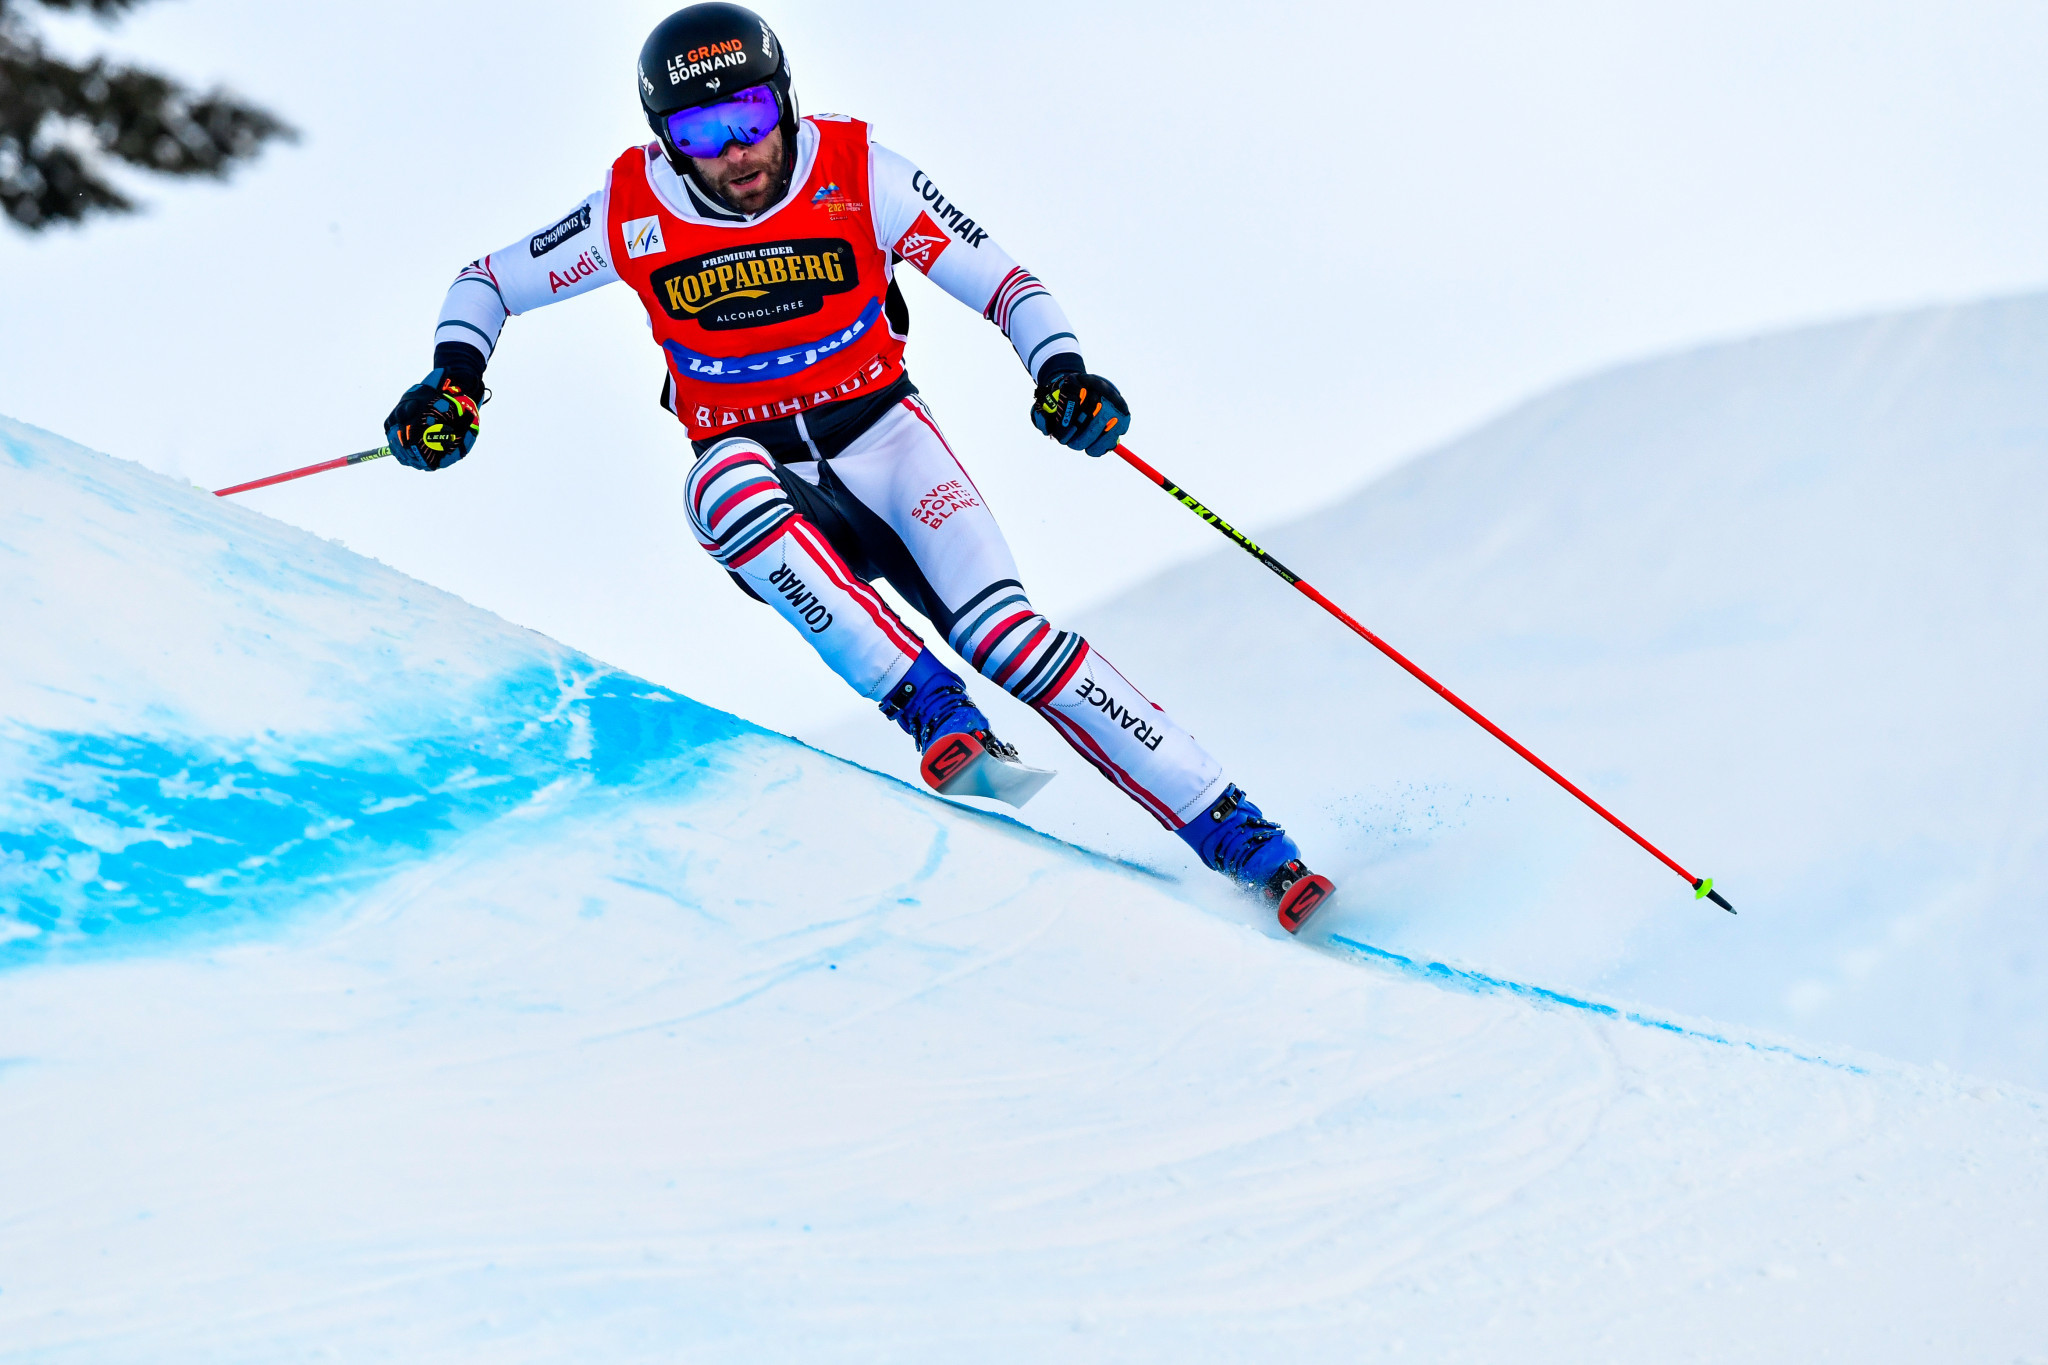 Midol and Smith top qualifying at FIS Ski Cross World Cup in Bakuriani